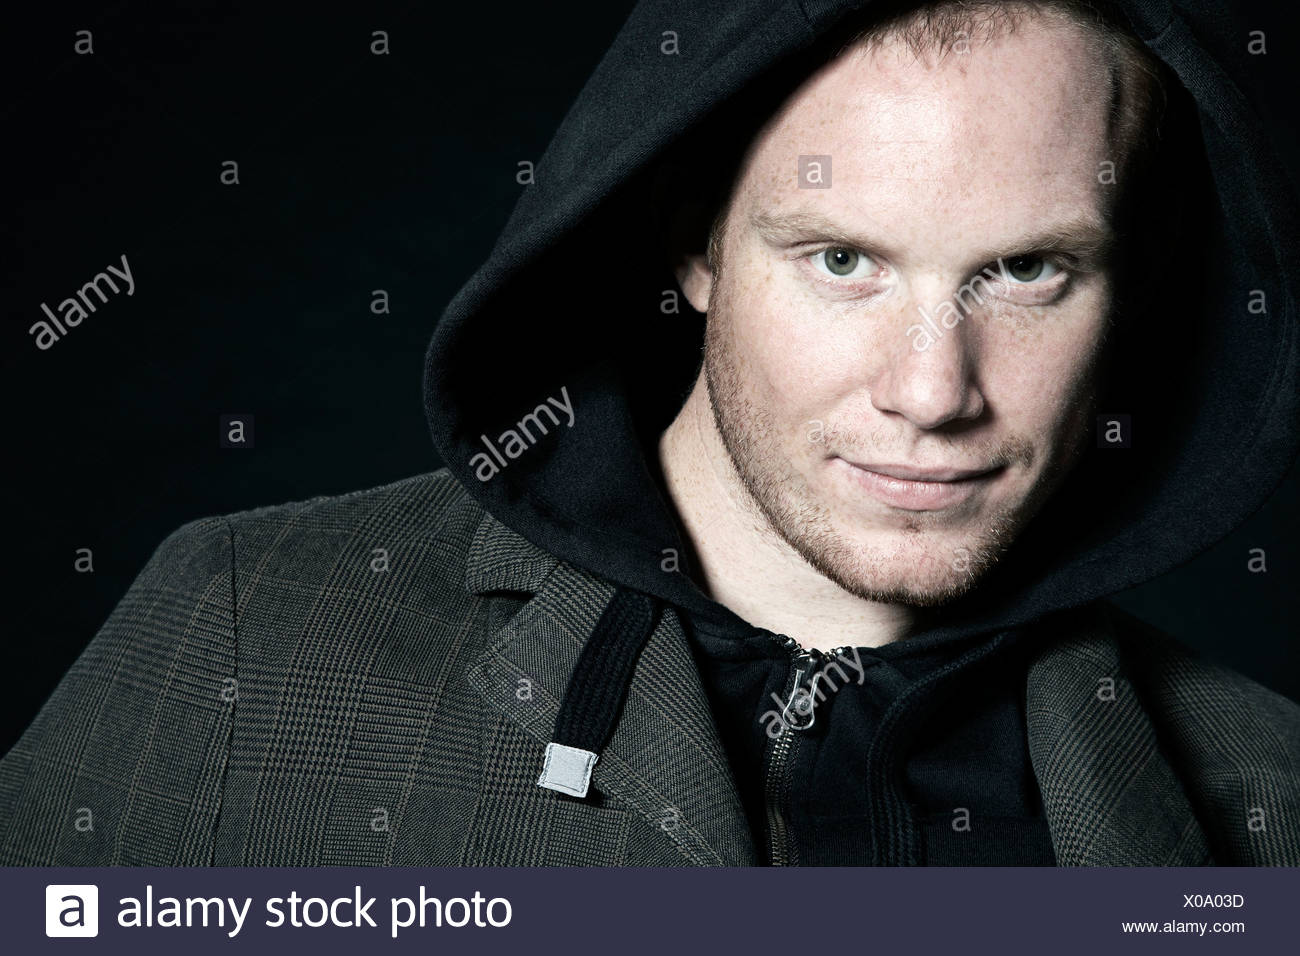 Portrait of a young man wearing a hoodie shirt looking into camera - Stock Image